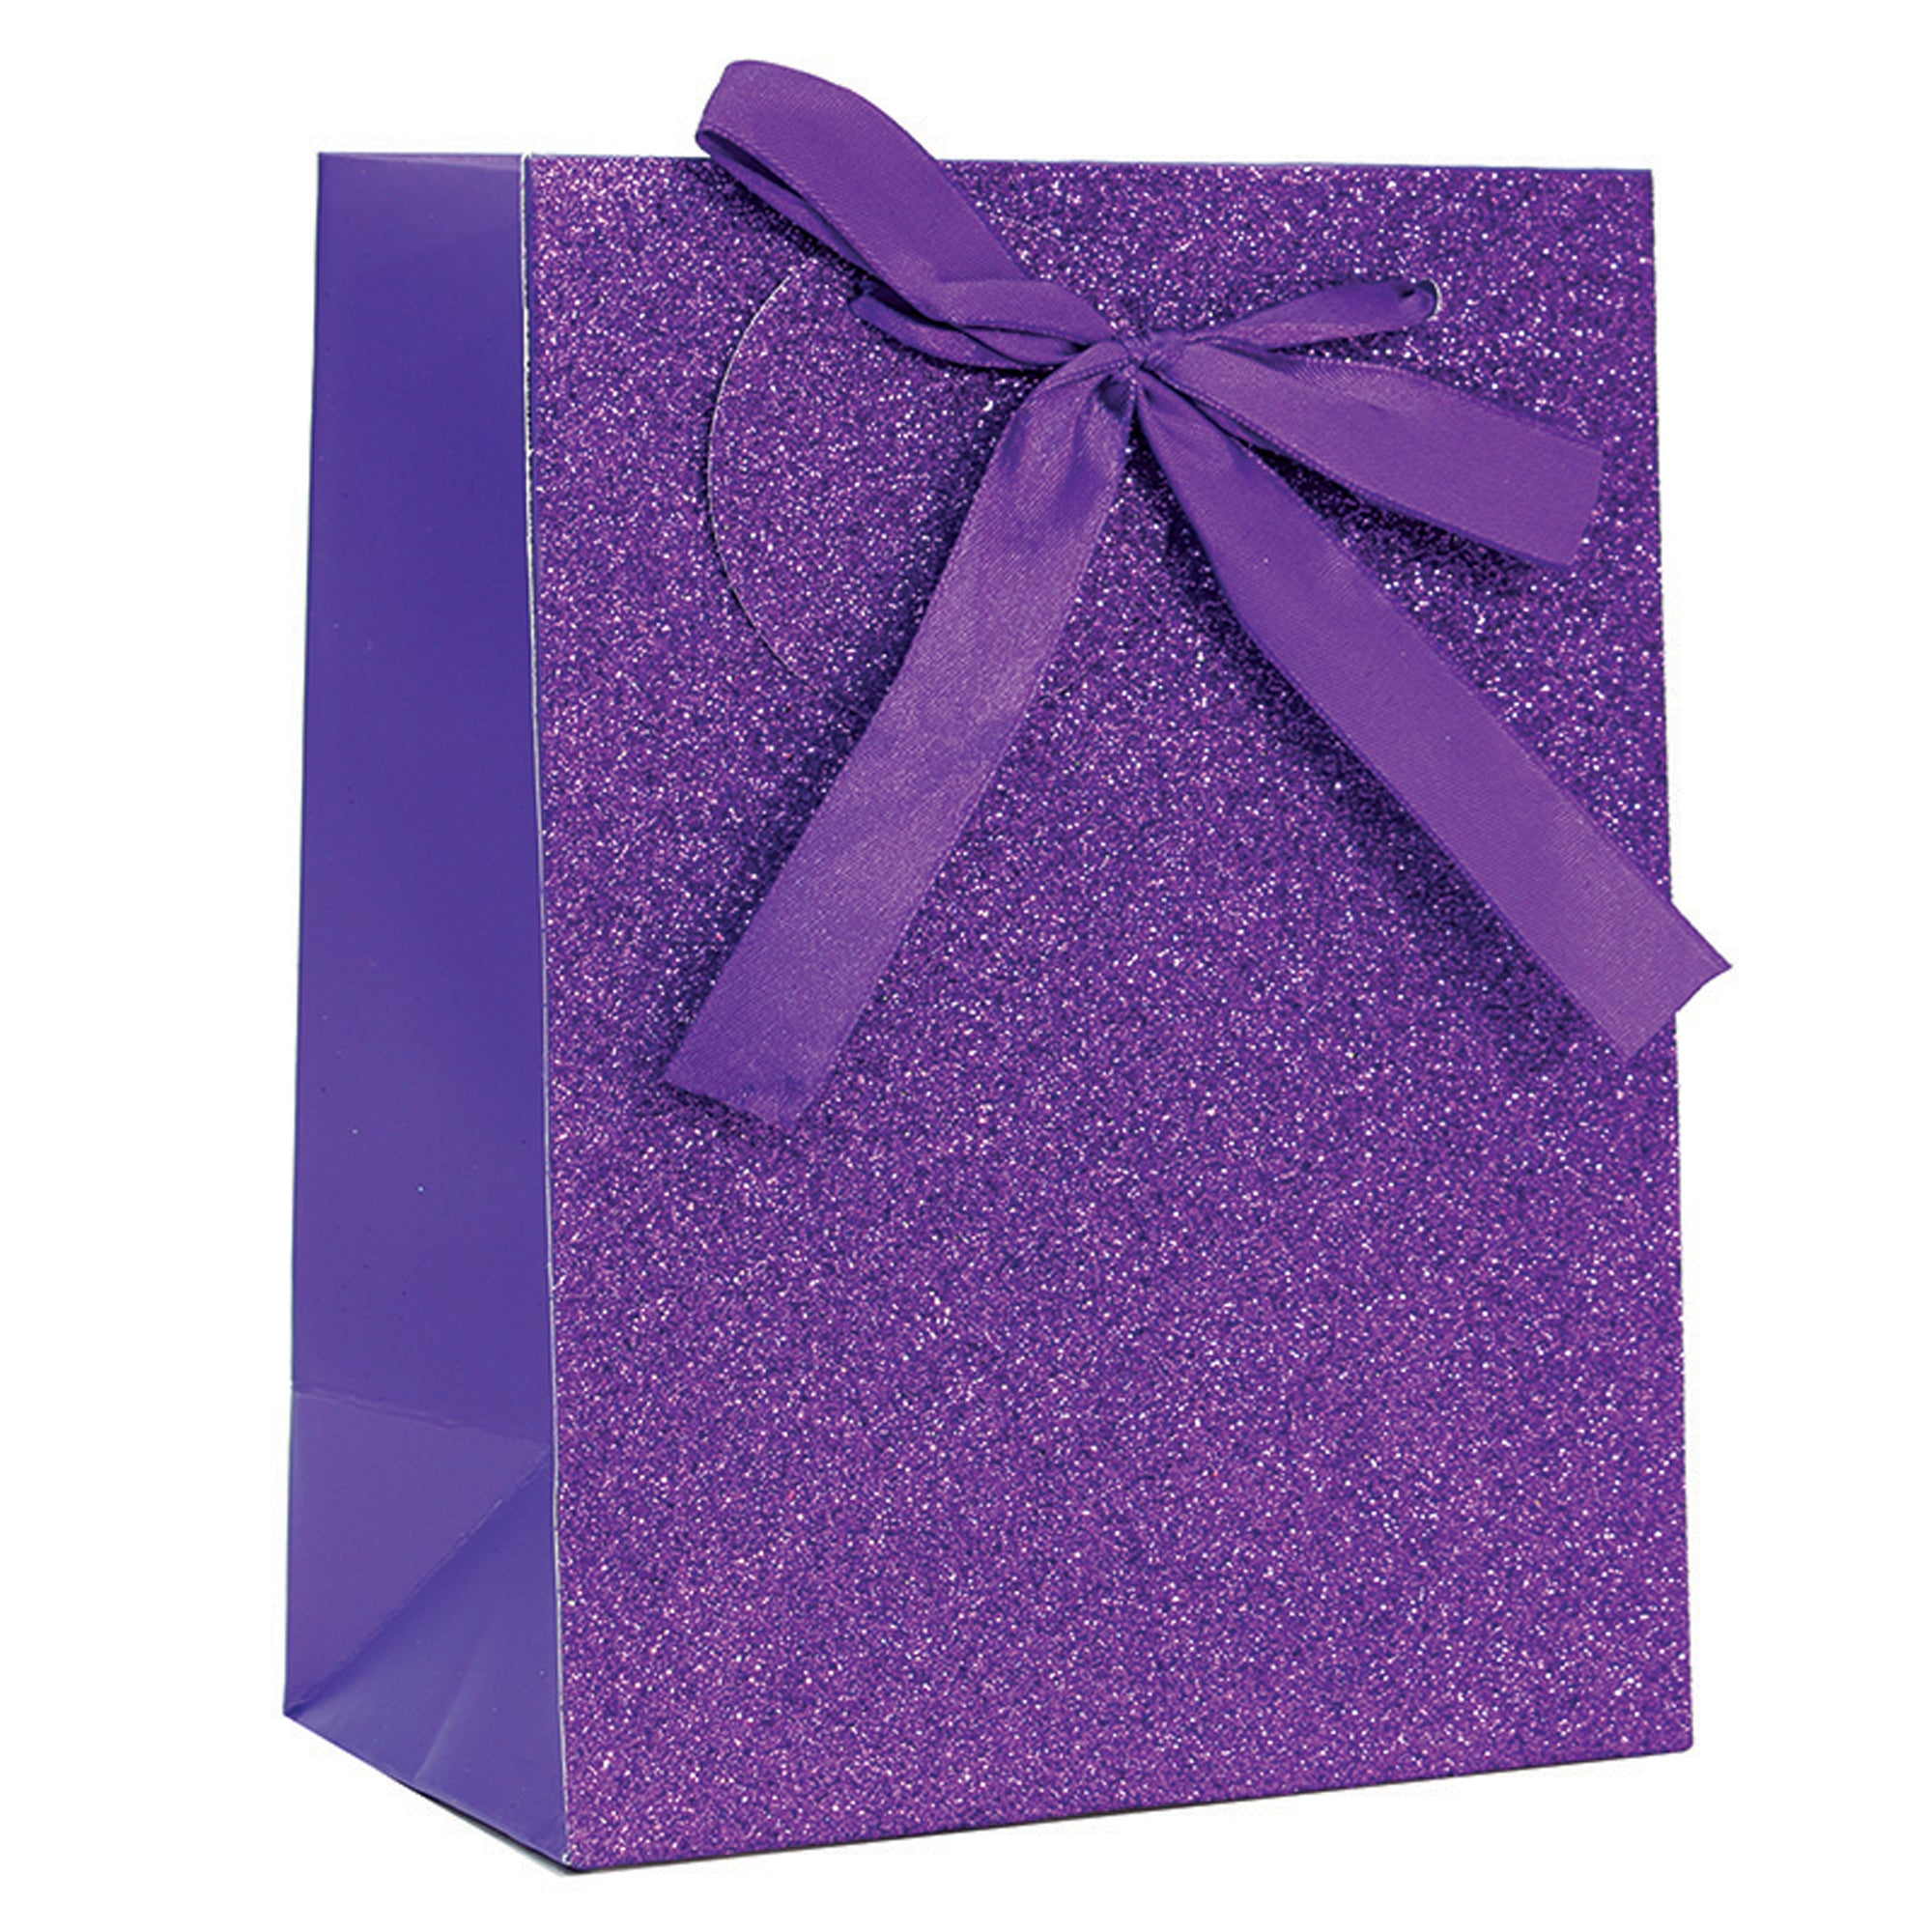 PURPLE SPARKLE GLITTER GIFT BAG